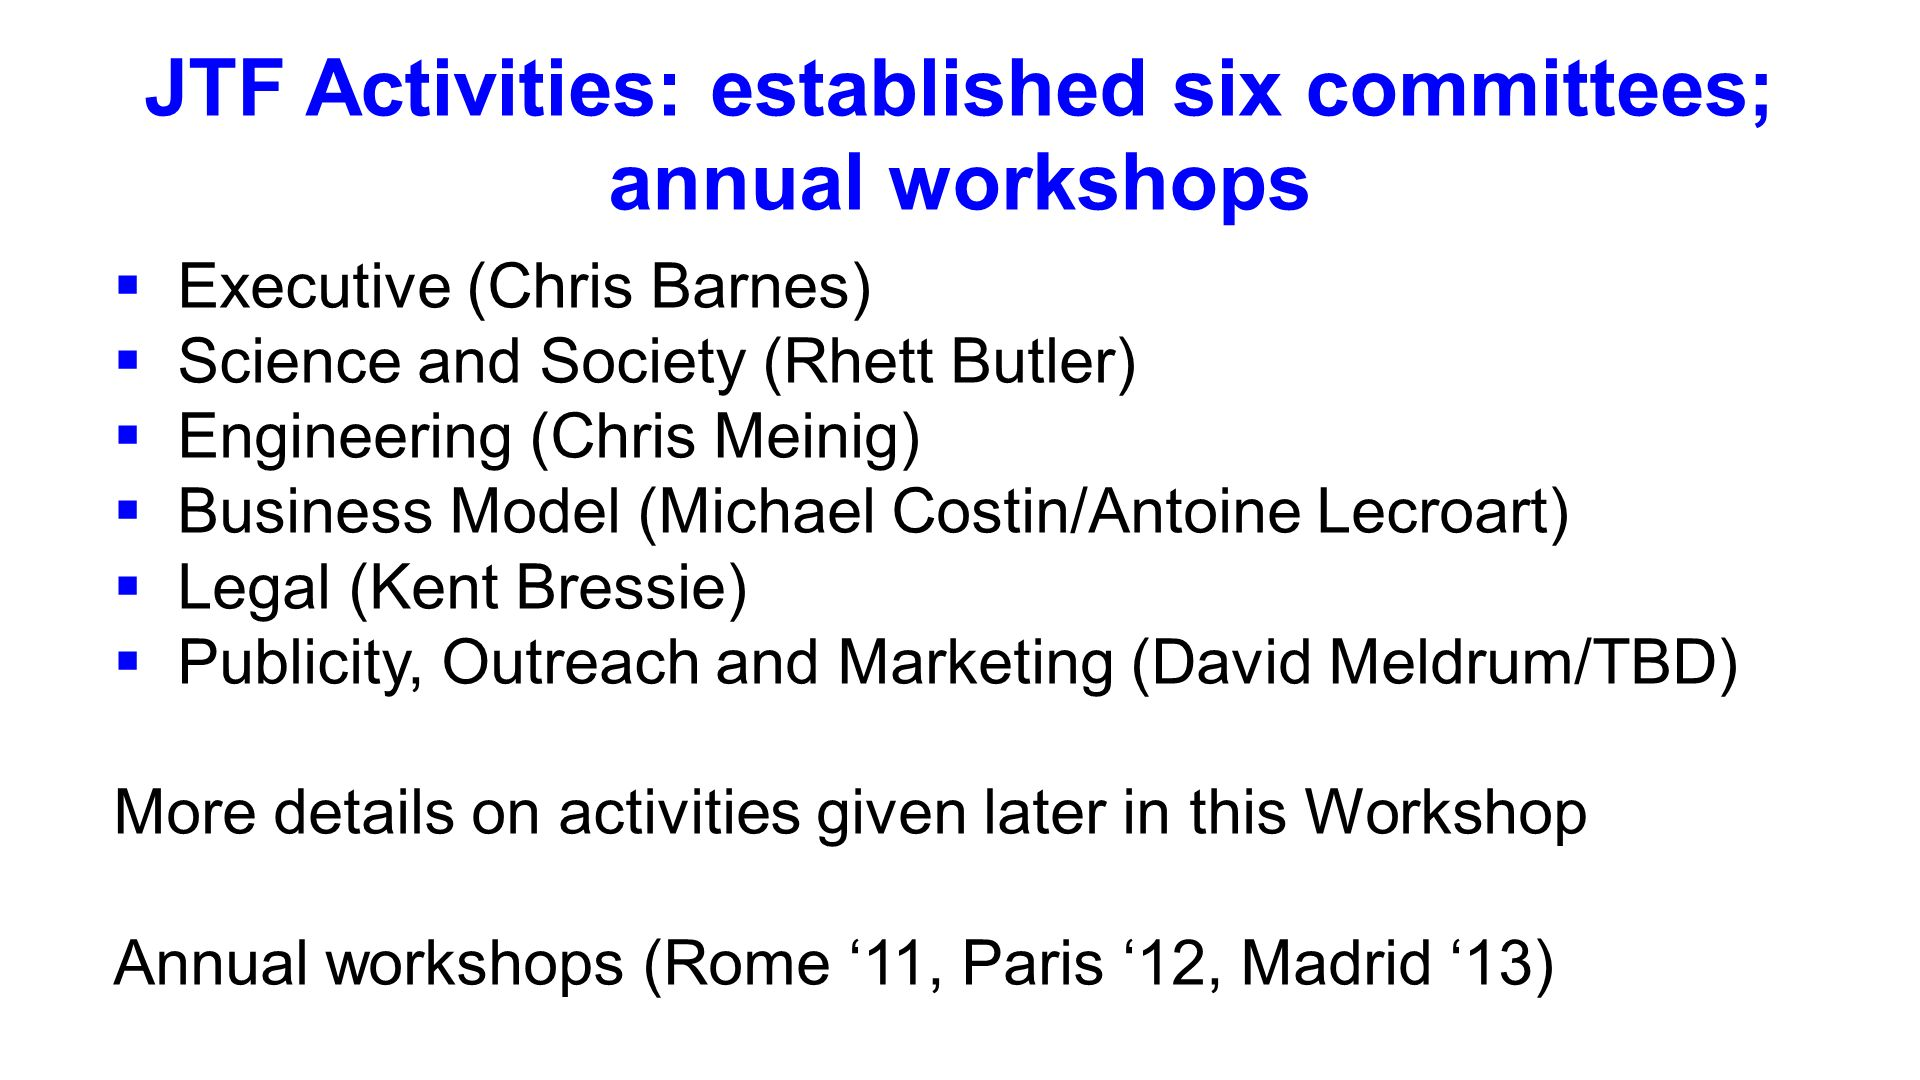 JTF Activities: established six committees; annual workshops Executive (Chris Barnes) Science and Society (Rhett Butler) Engineering (Chris Meinig) Business Model (Michael Costin/Antoine Lecroart) Legal (Kent Bressie) Publicity, Outreach and Marketing (David Meldrum/TBD) More details on activities given later in this Workshop Annual workshops (Rome 11, Paris 12, Madrid 13)